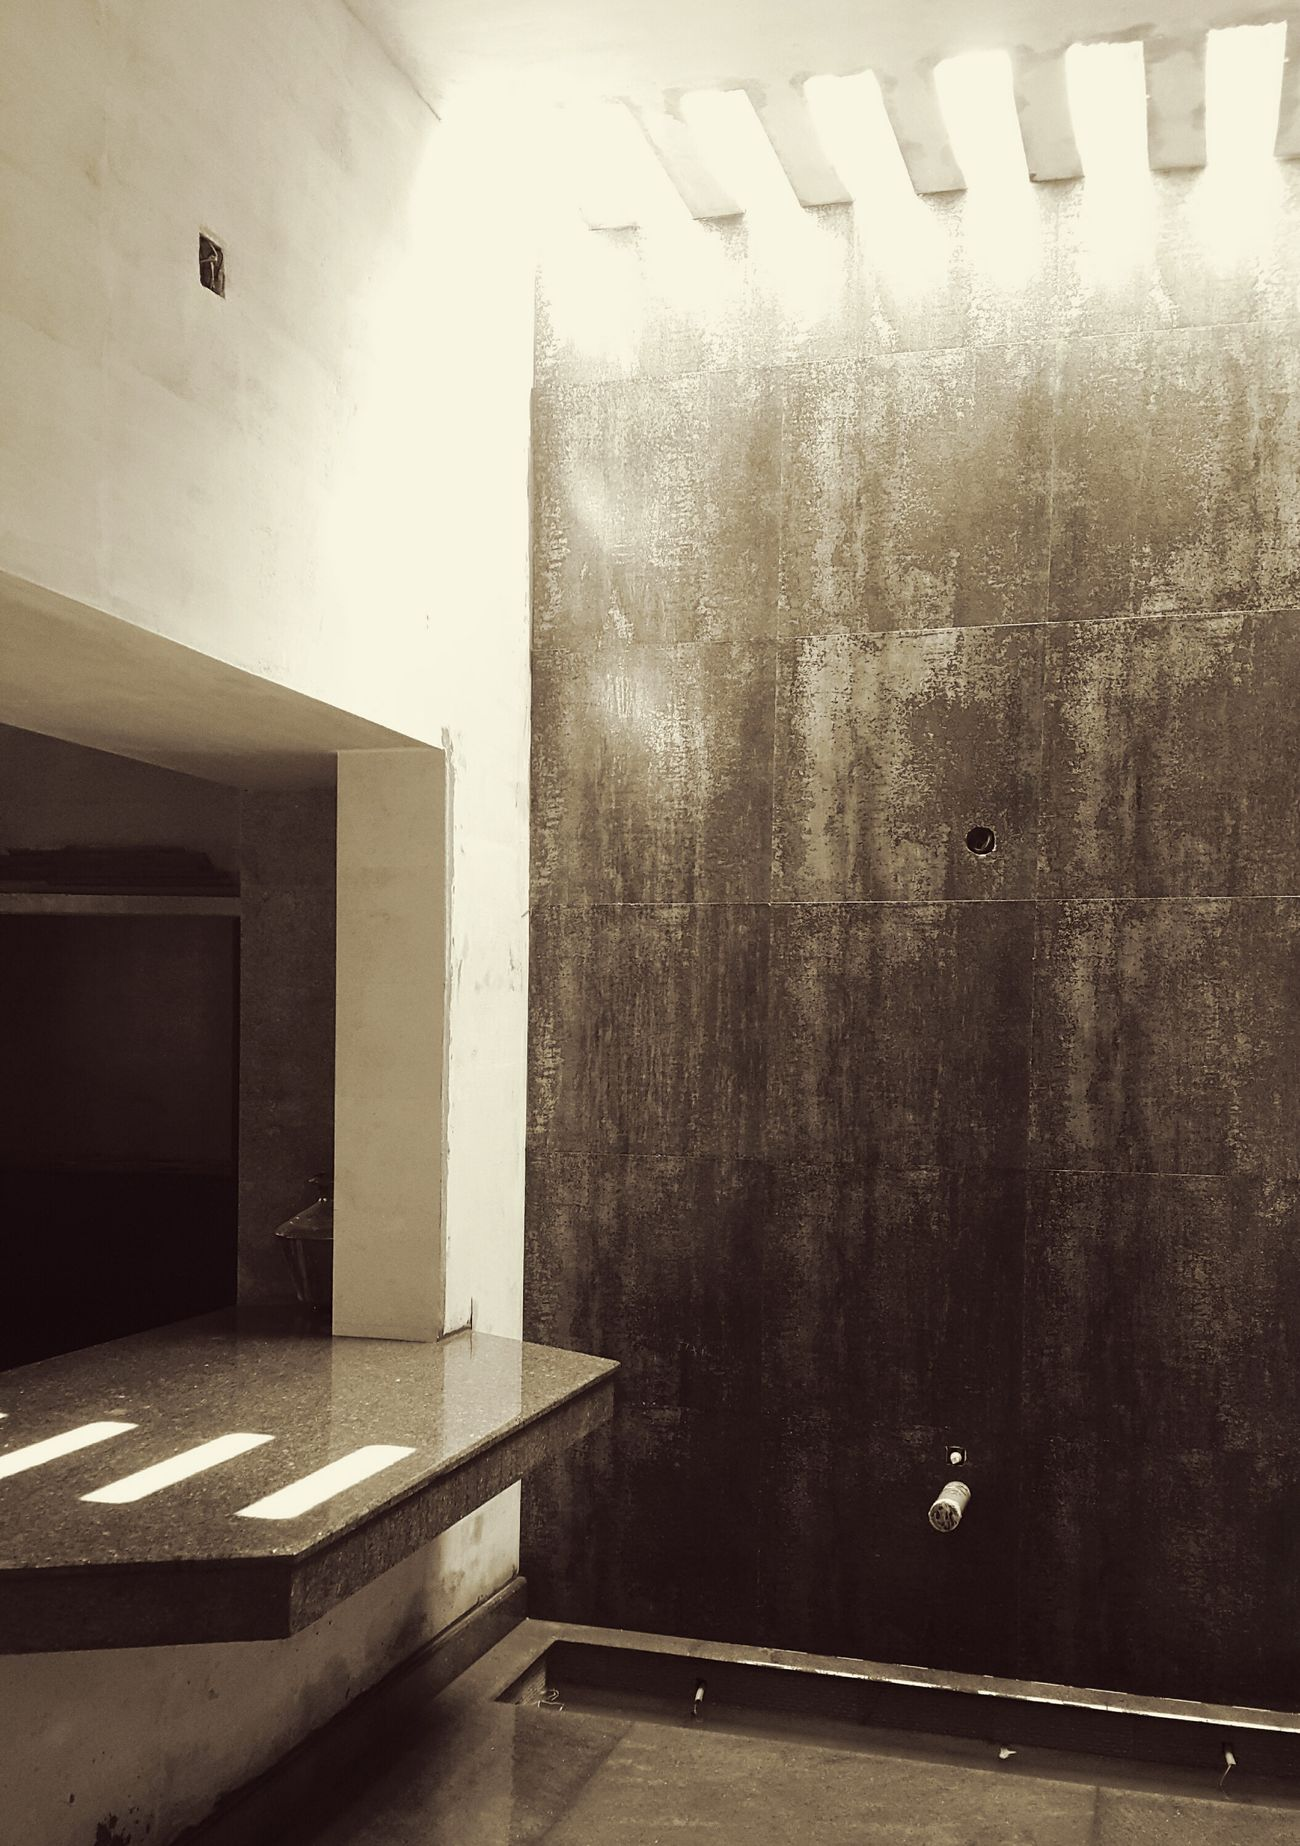 Interior Courtyard  Countertop Interior Skylight Texture Rustic Pergola Black And White Architecture Day No People Built Structure